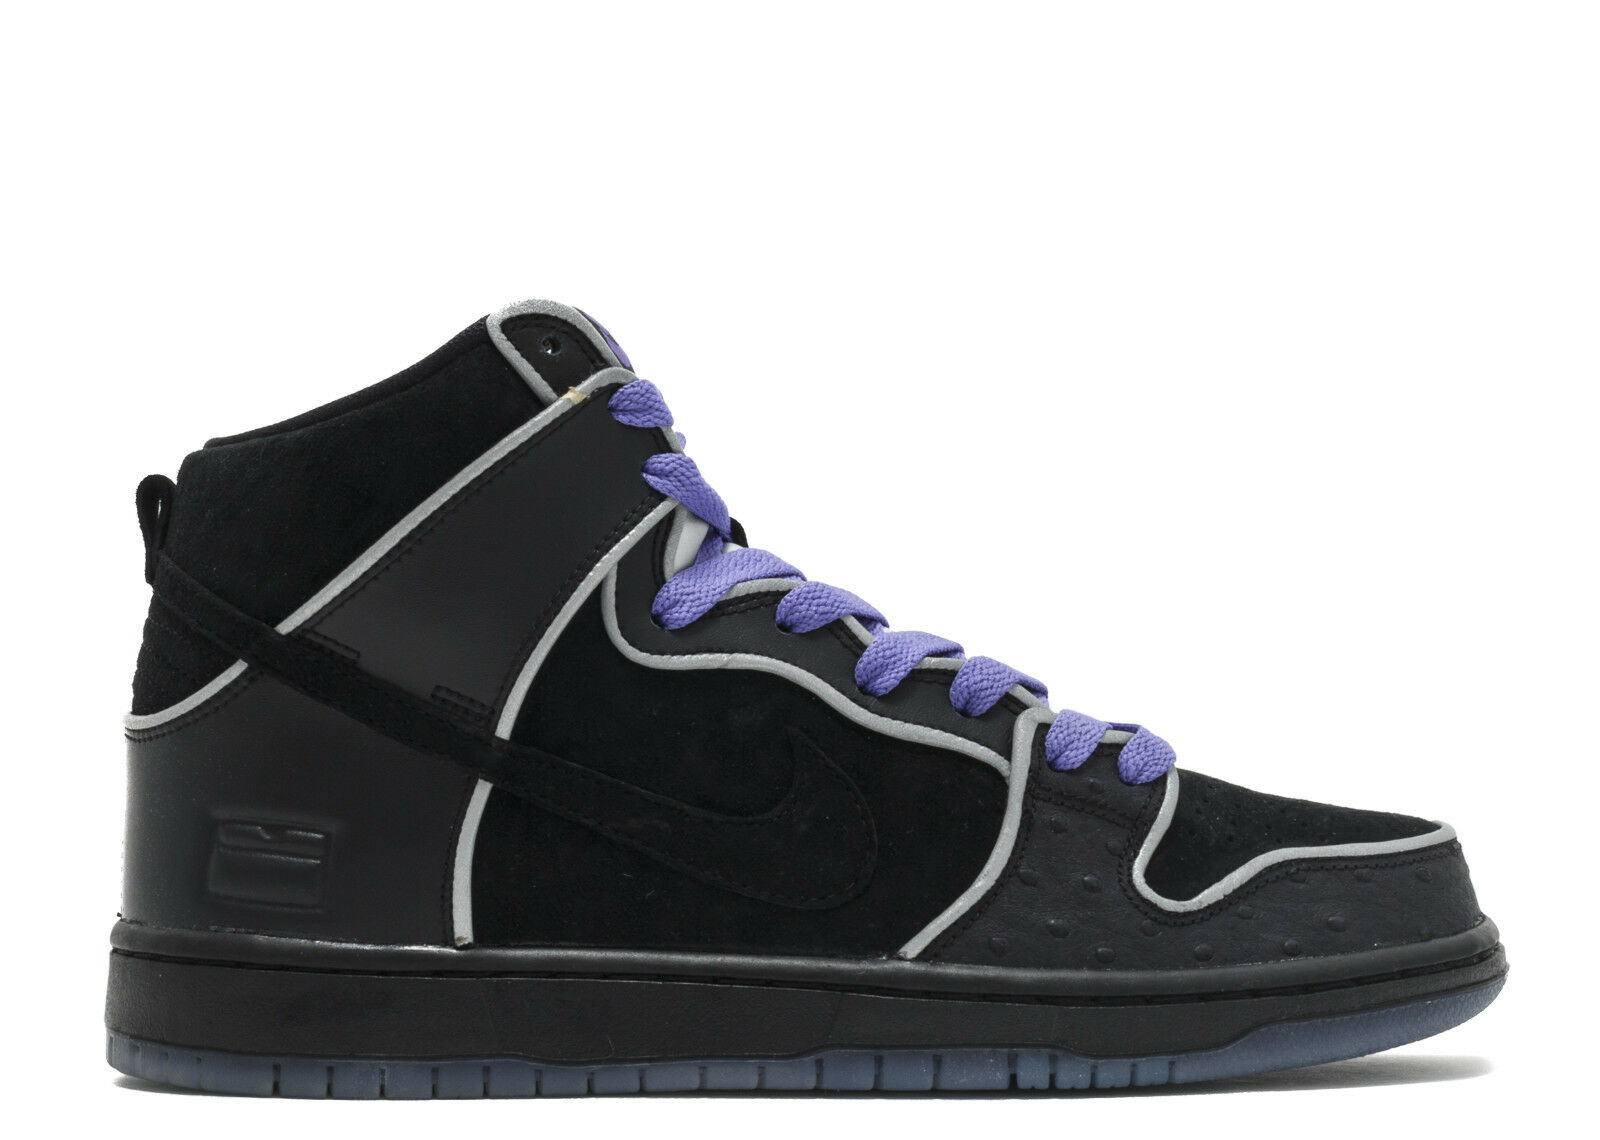 Nike DUNK HIGH ELITE SB Noir blanc  Violet Violet  Haze Discounted  Hommes  Chaussures 1332be